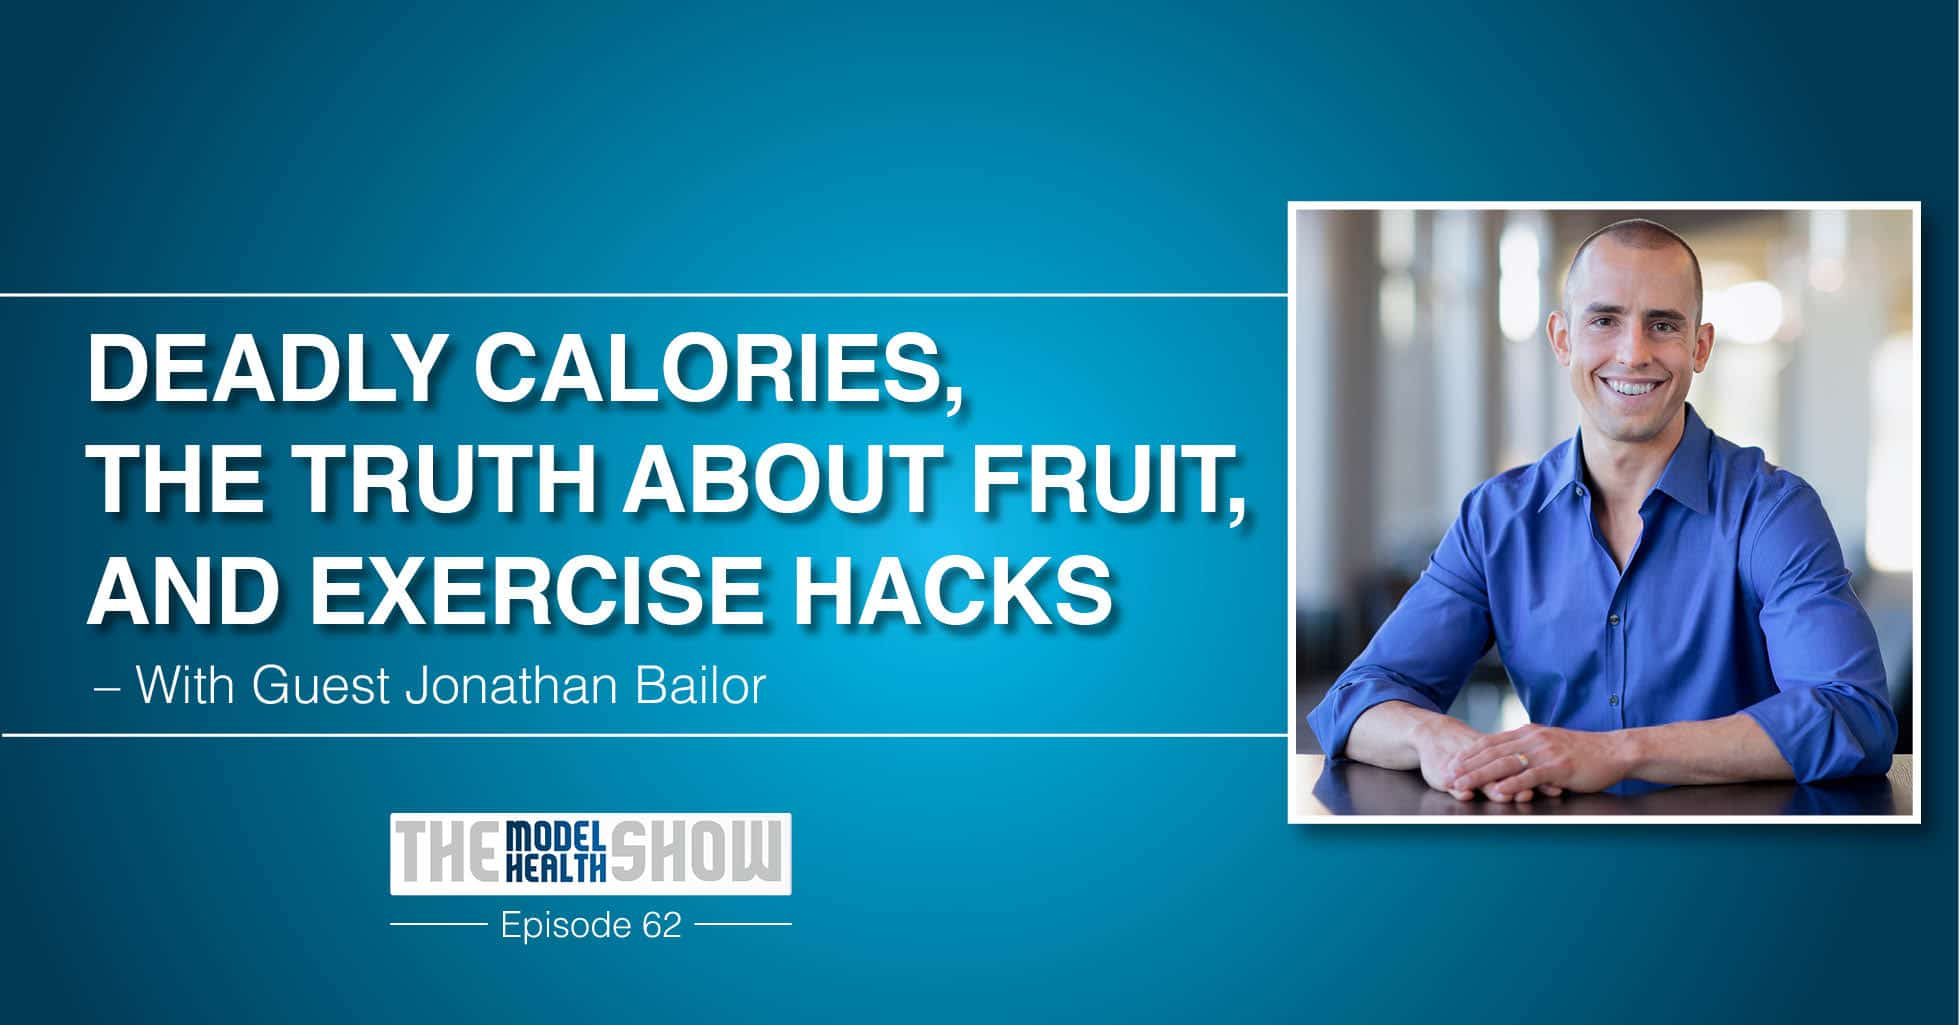 Deadly calories exercise hacks